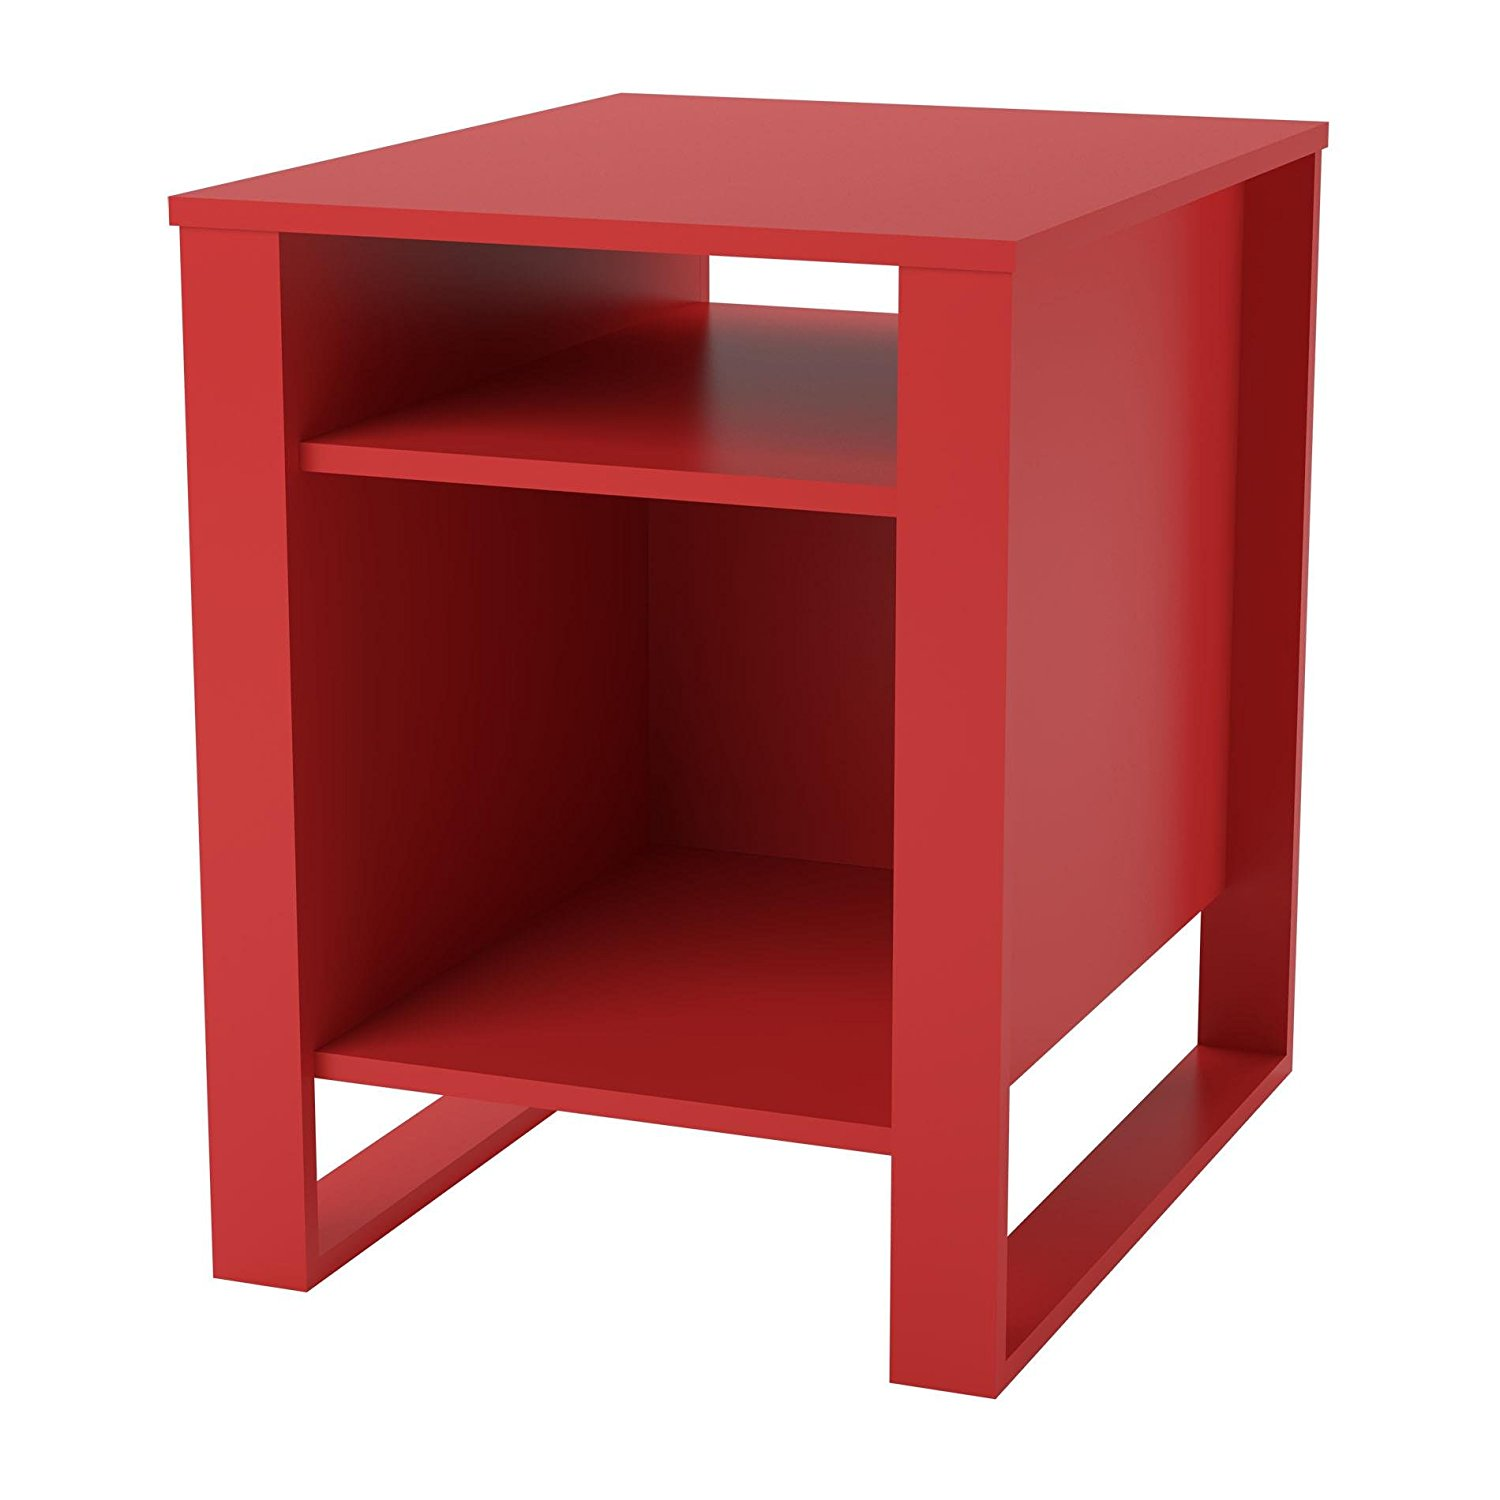 consoles and accent tables harry furniture design red table living room distressed small with regard cozy tall chest designs cloth placemats napkins plexiglass cube espresso